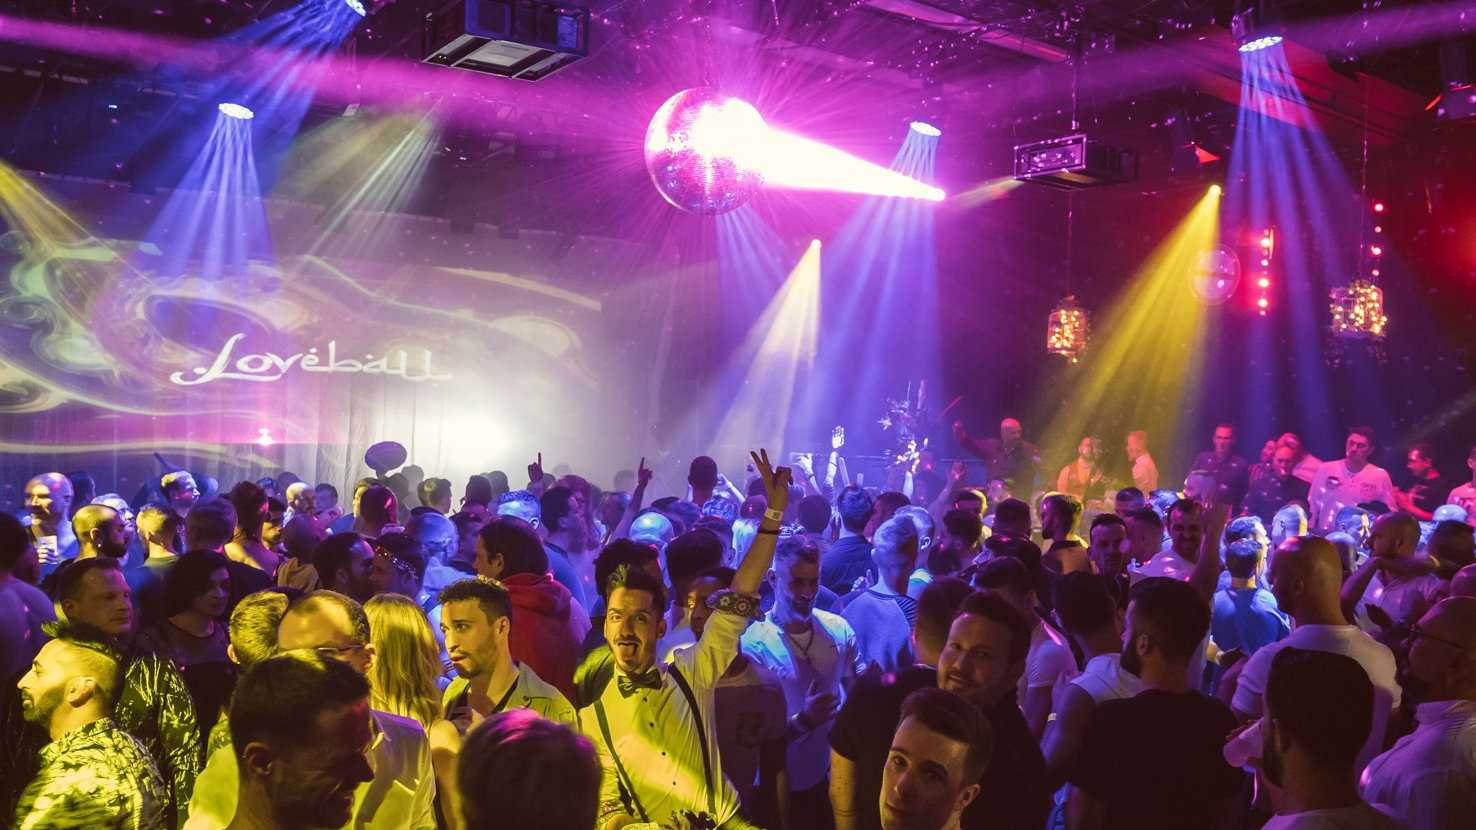 Loveball is a sumptuous gay New Year's Eve party held in Vienna